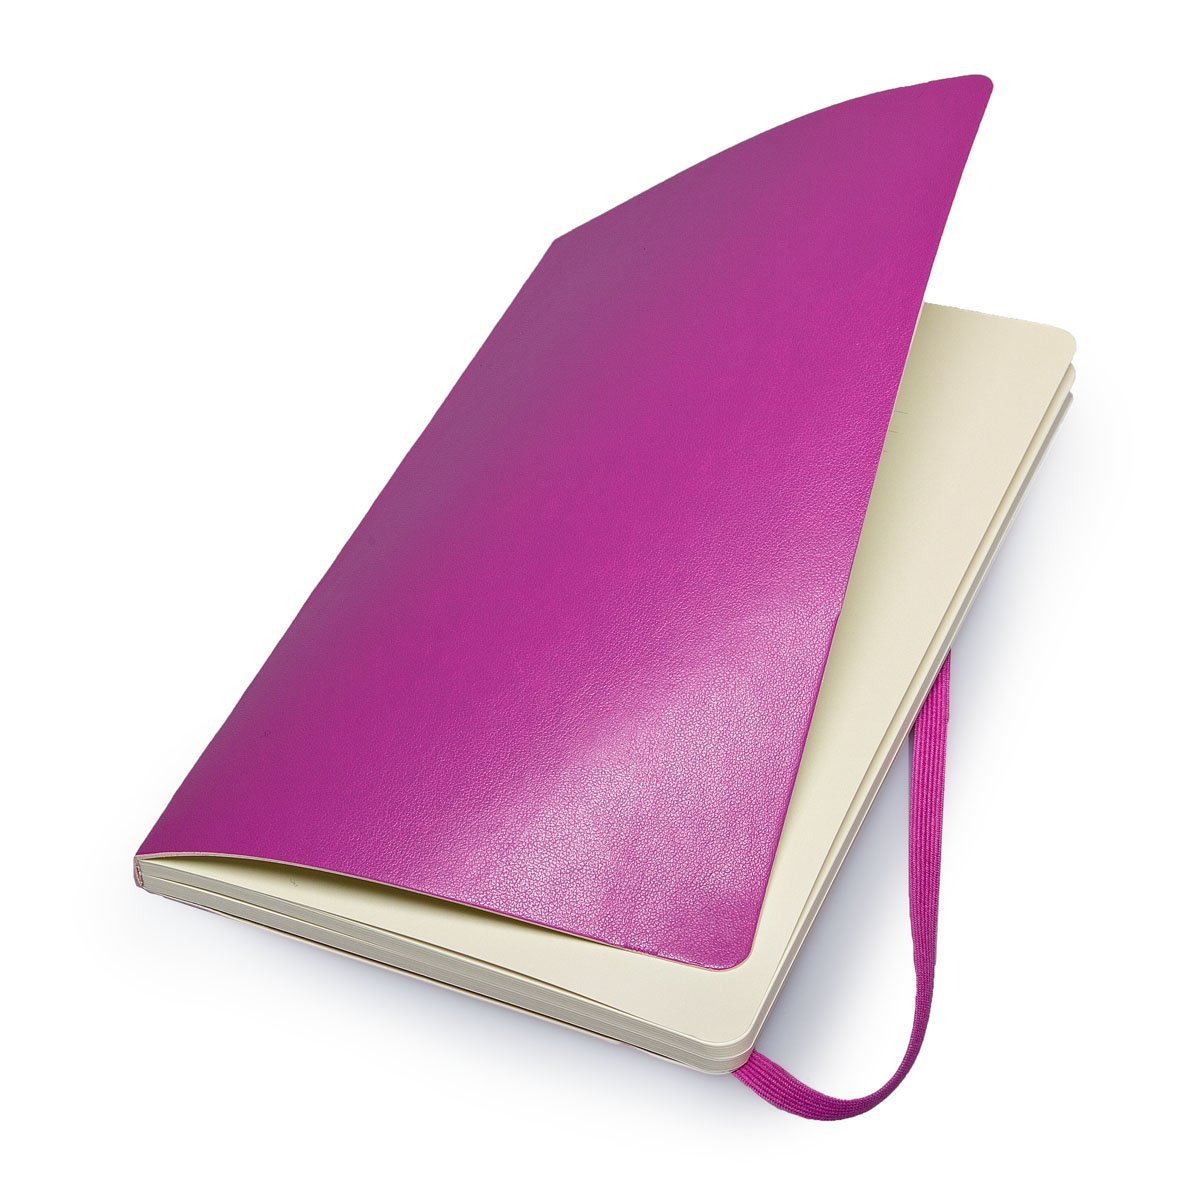 Moleskine Classic Colored Notebook, Large, Plain, Orchid Purple, Soft Cover (5 x 8.25) by Moleskine